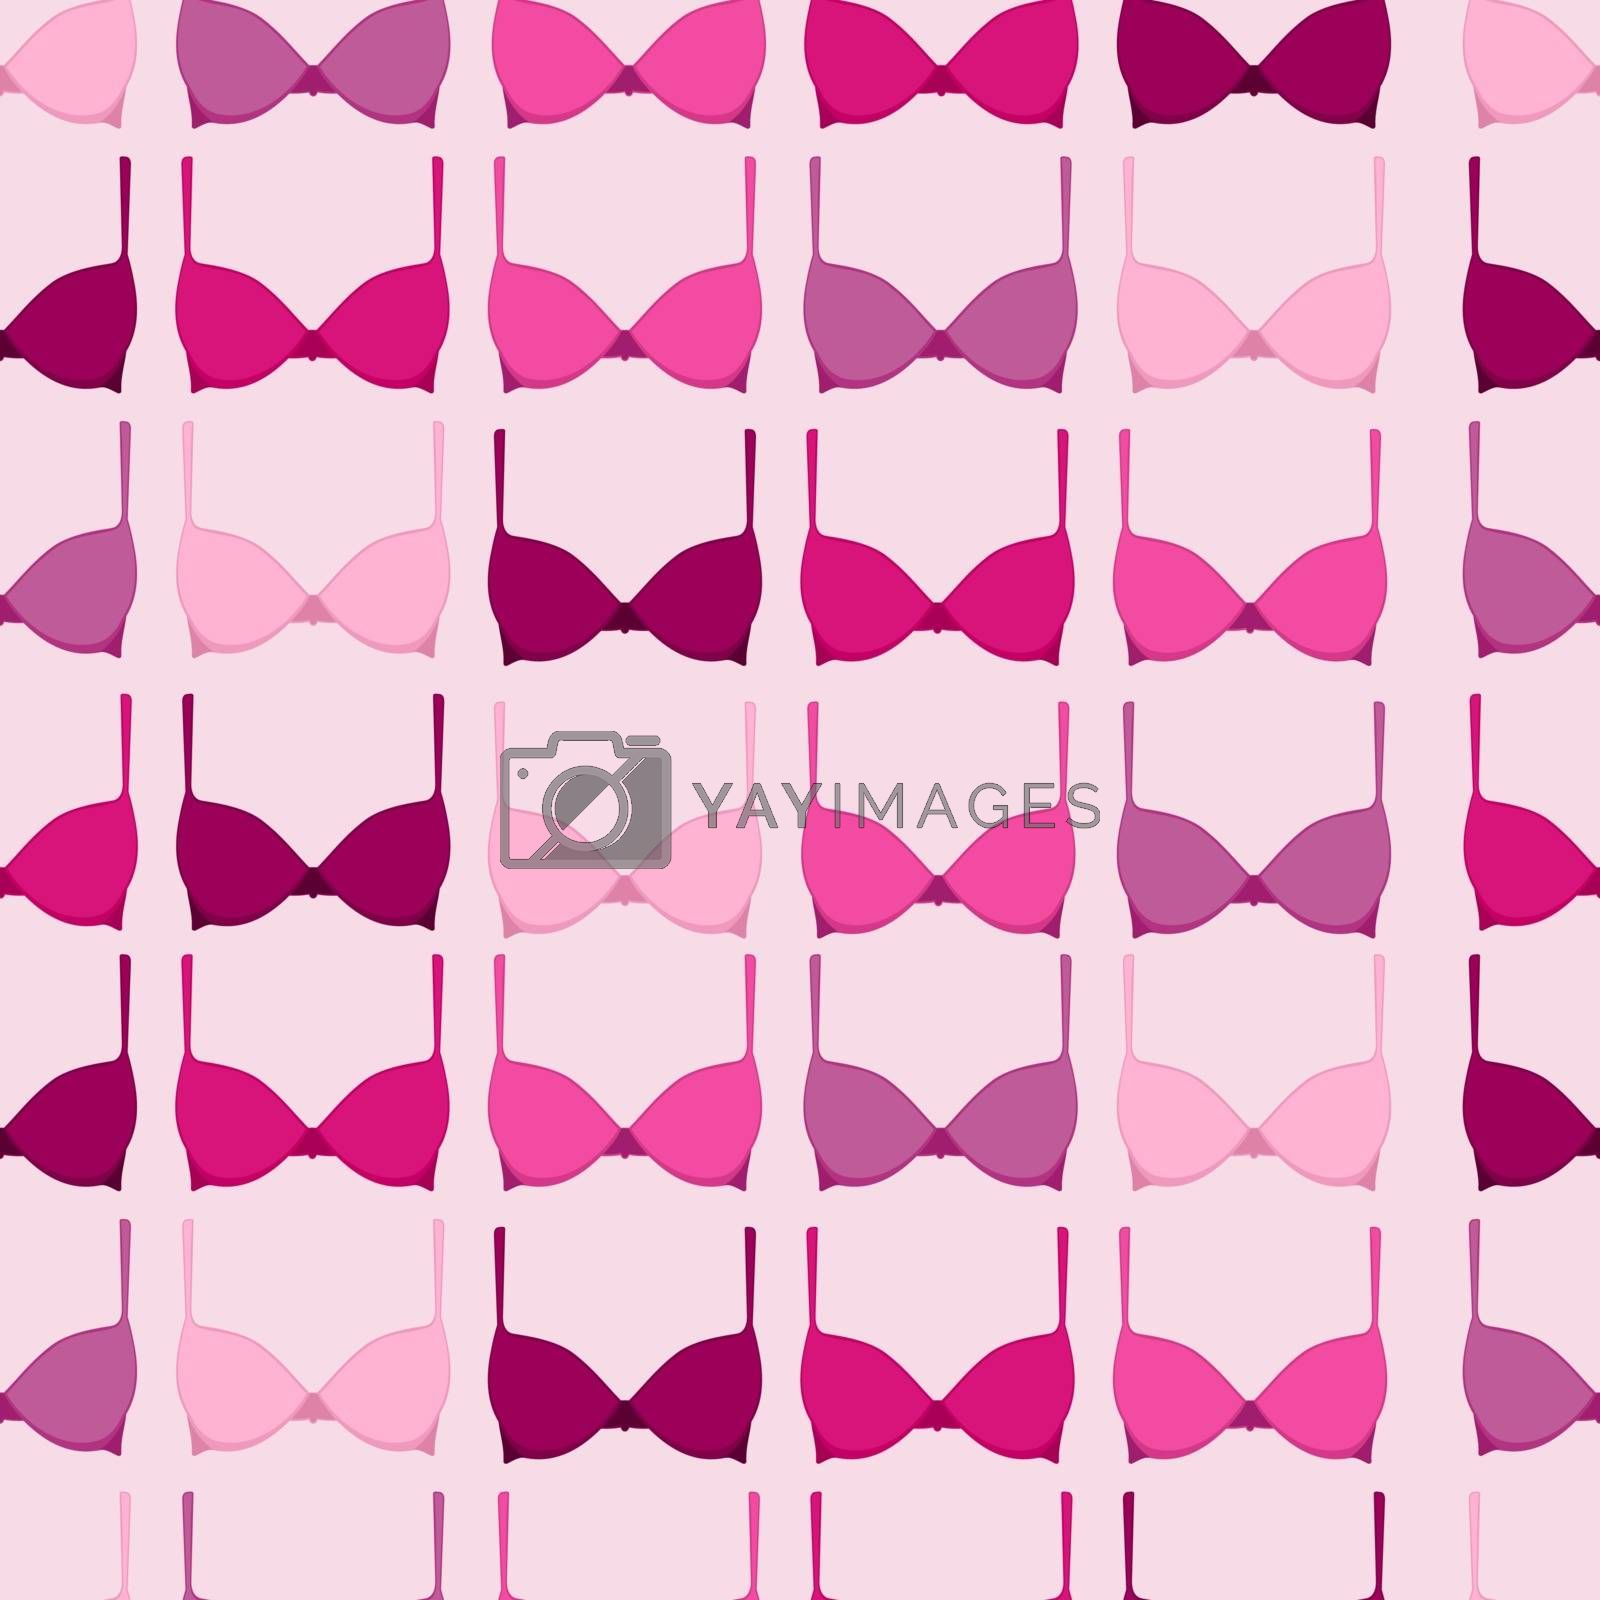 Seamless pattern with pink bra elements in support of breast cancer awareness campaign. EPS10 vector file.